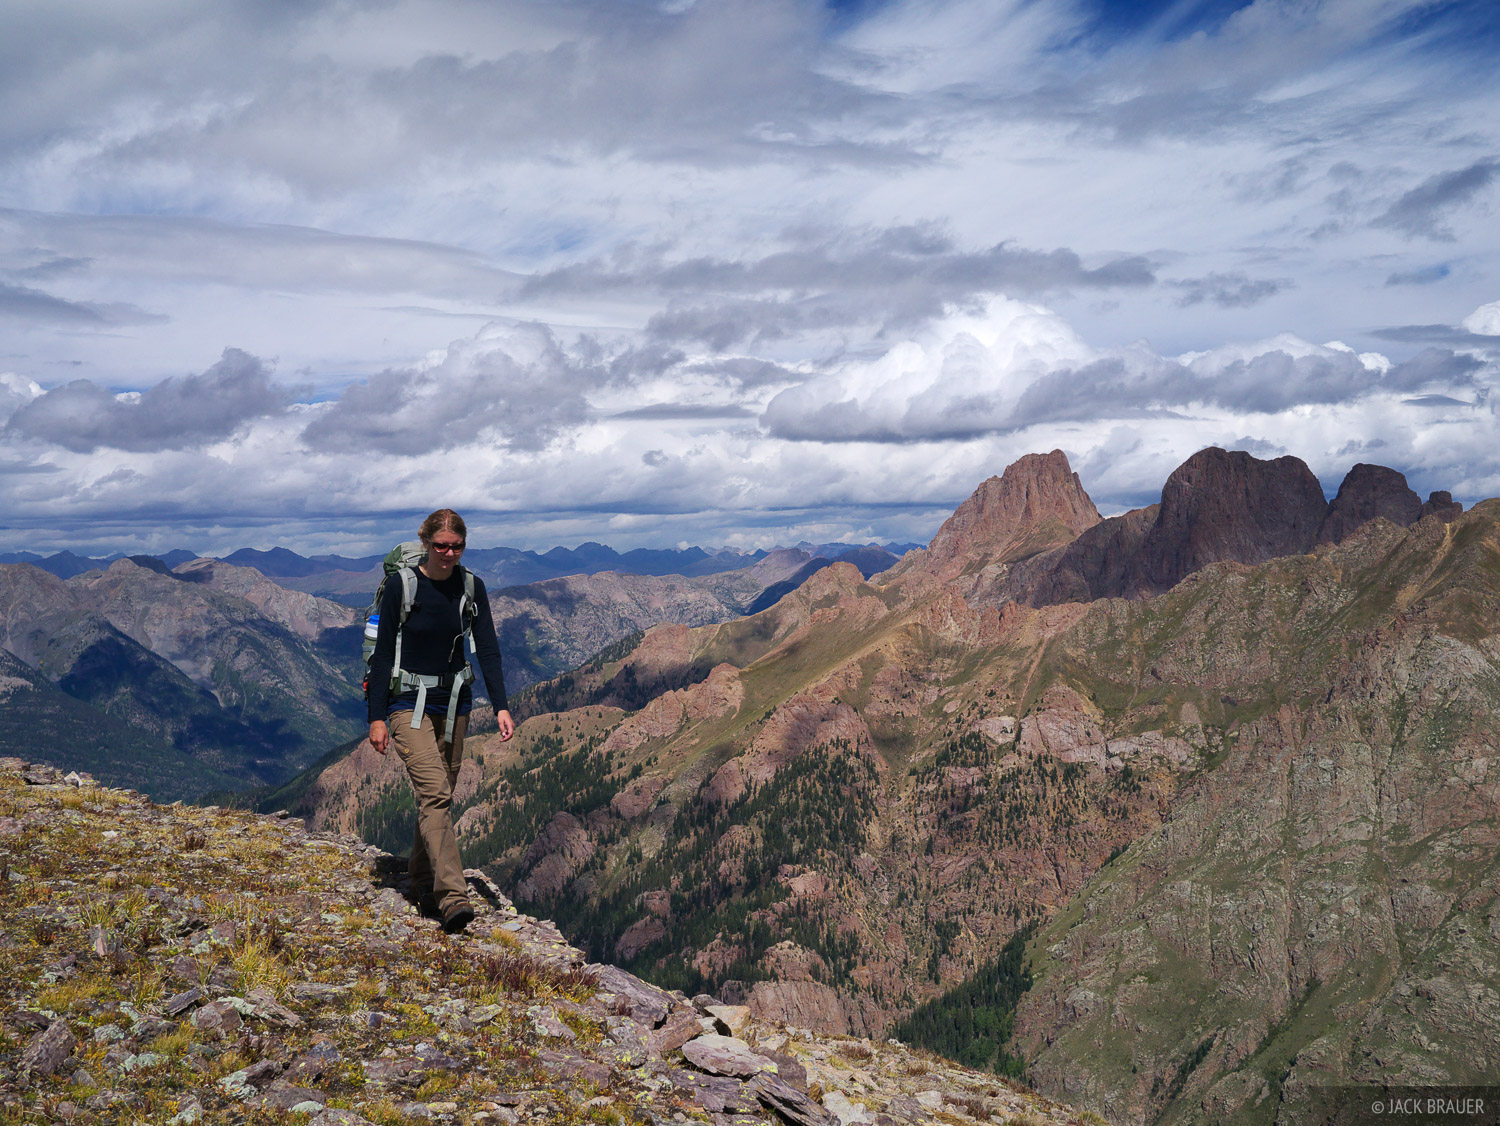 Hiking a high ridge in the Weminuche Wilderness, with Pigeon Peak behind.